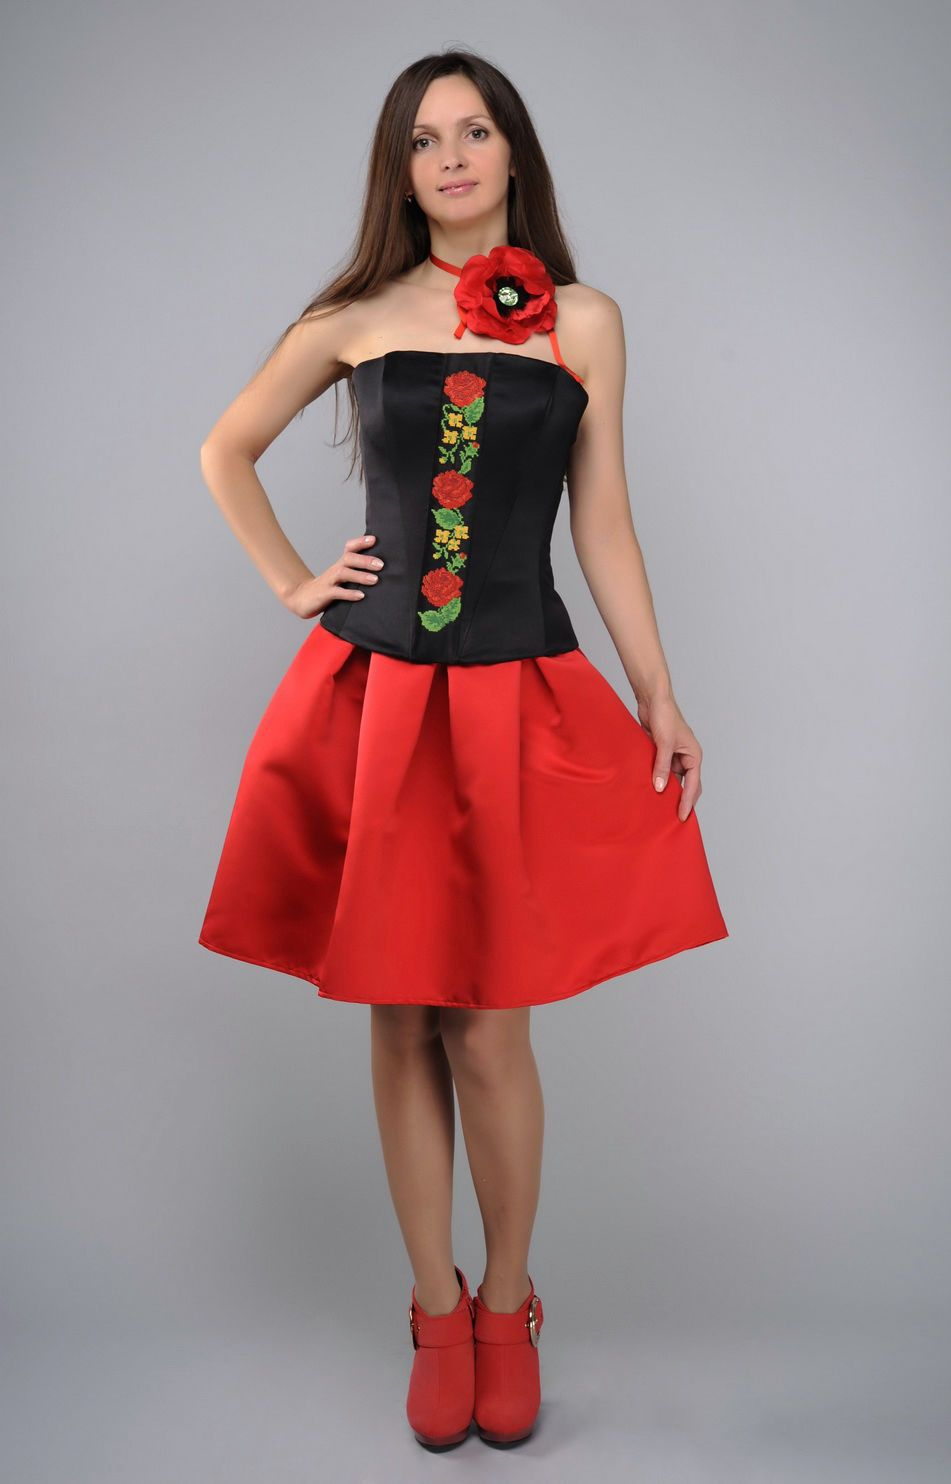 Costume in ethnic style, red and black photo 2